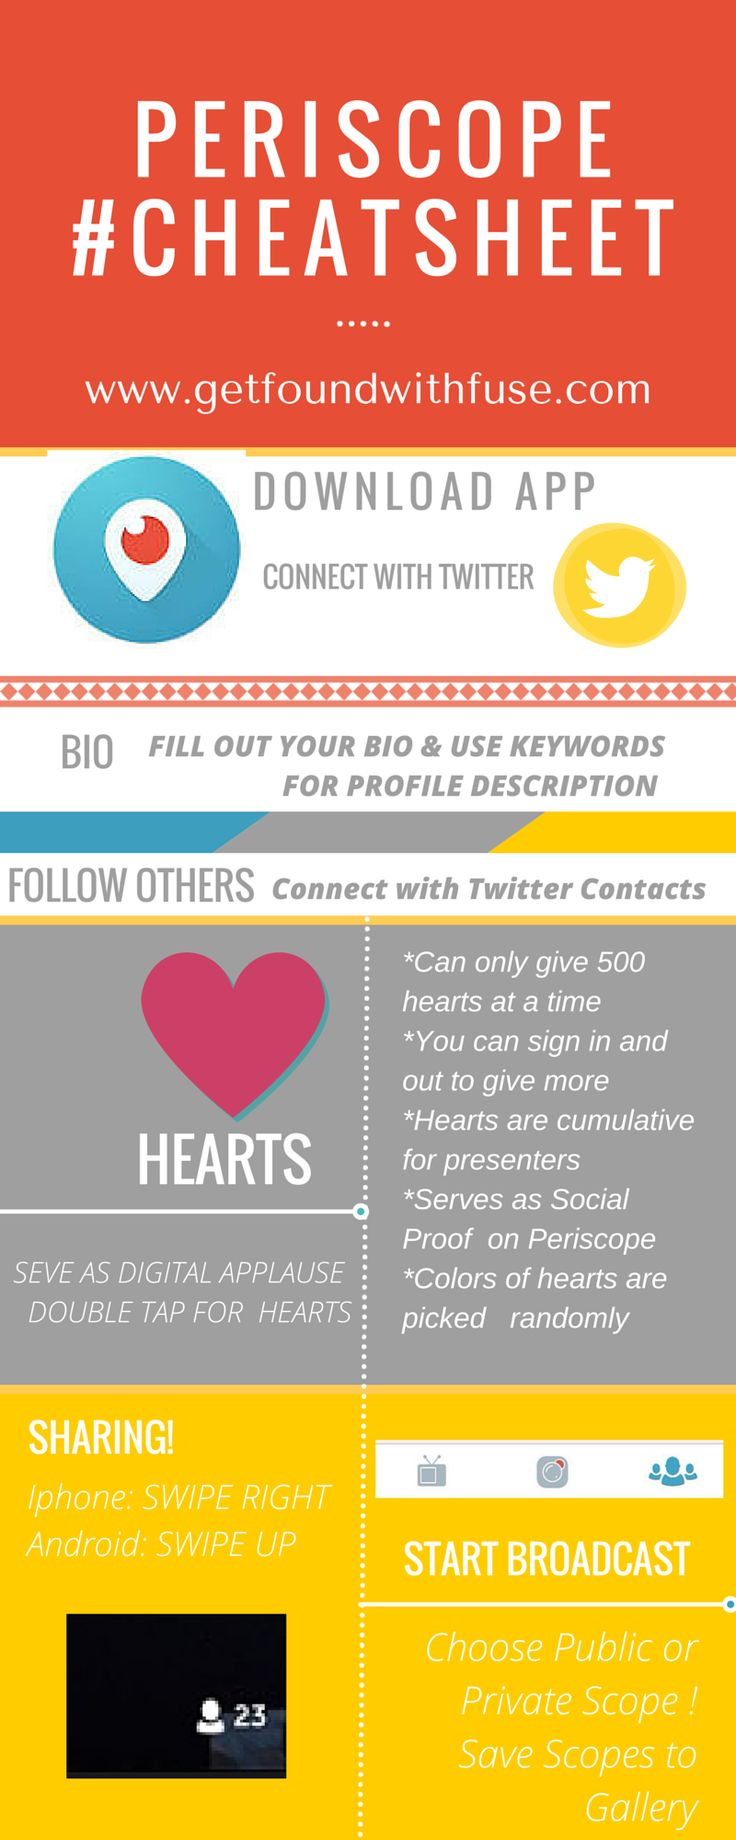 what is periscope info graphic and how do you get started with periscope so you can start broadcasting scopes for your business #periscope #periscopeforbusiness